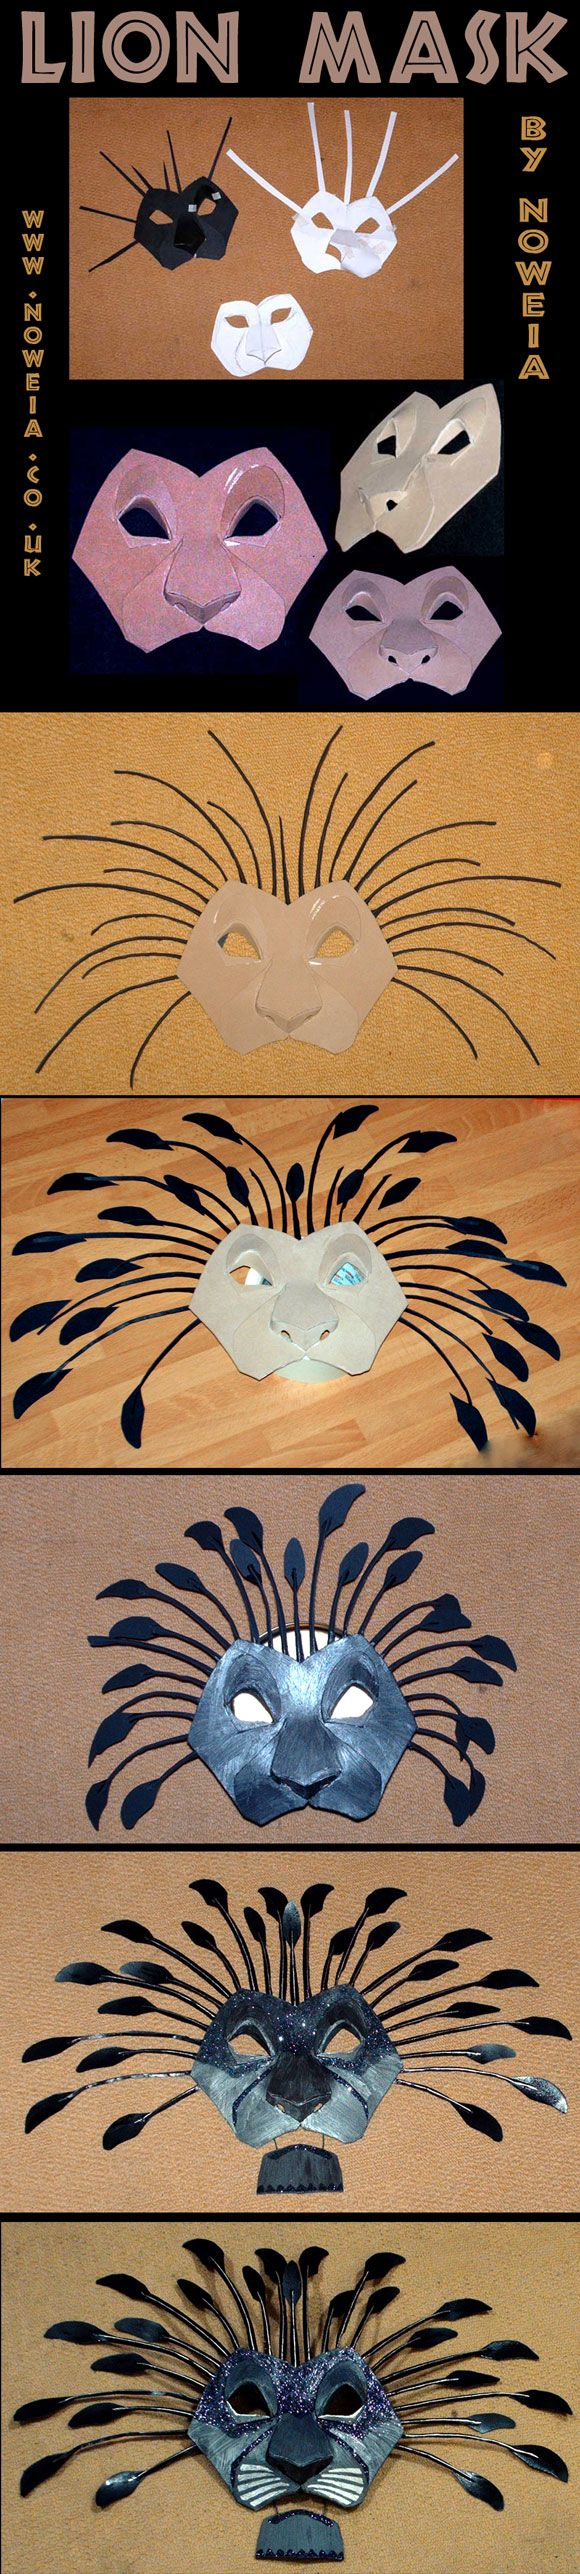 Making of Lion King Fanart Mask by Noweia. DeviantArt.